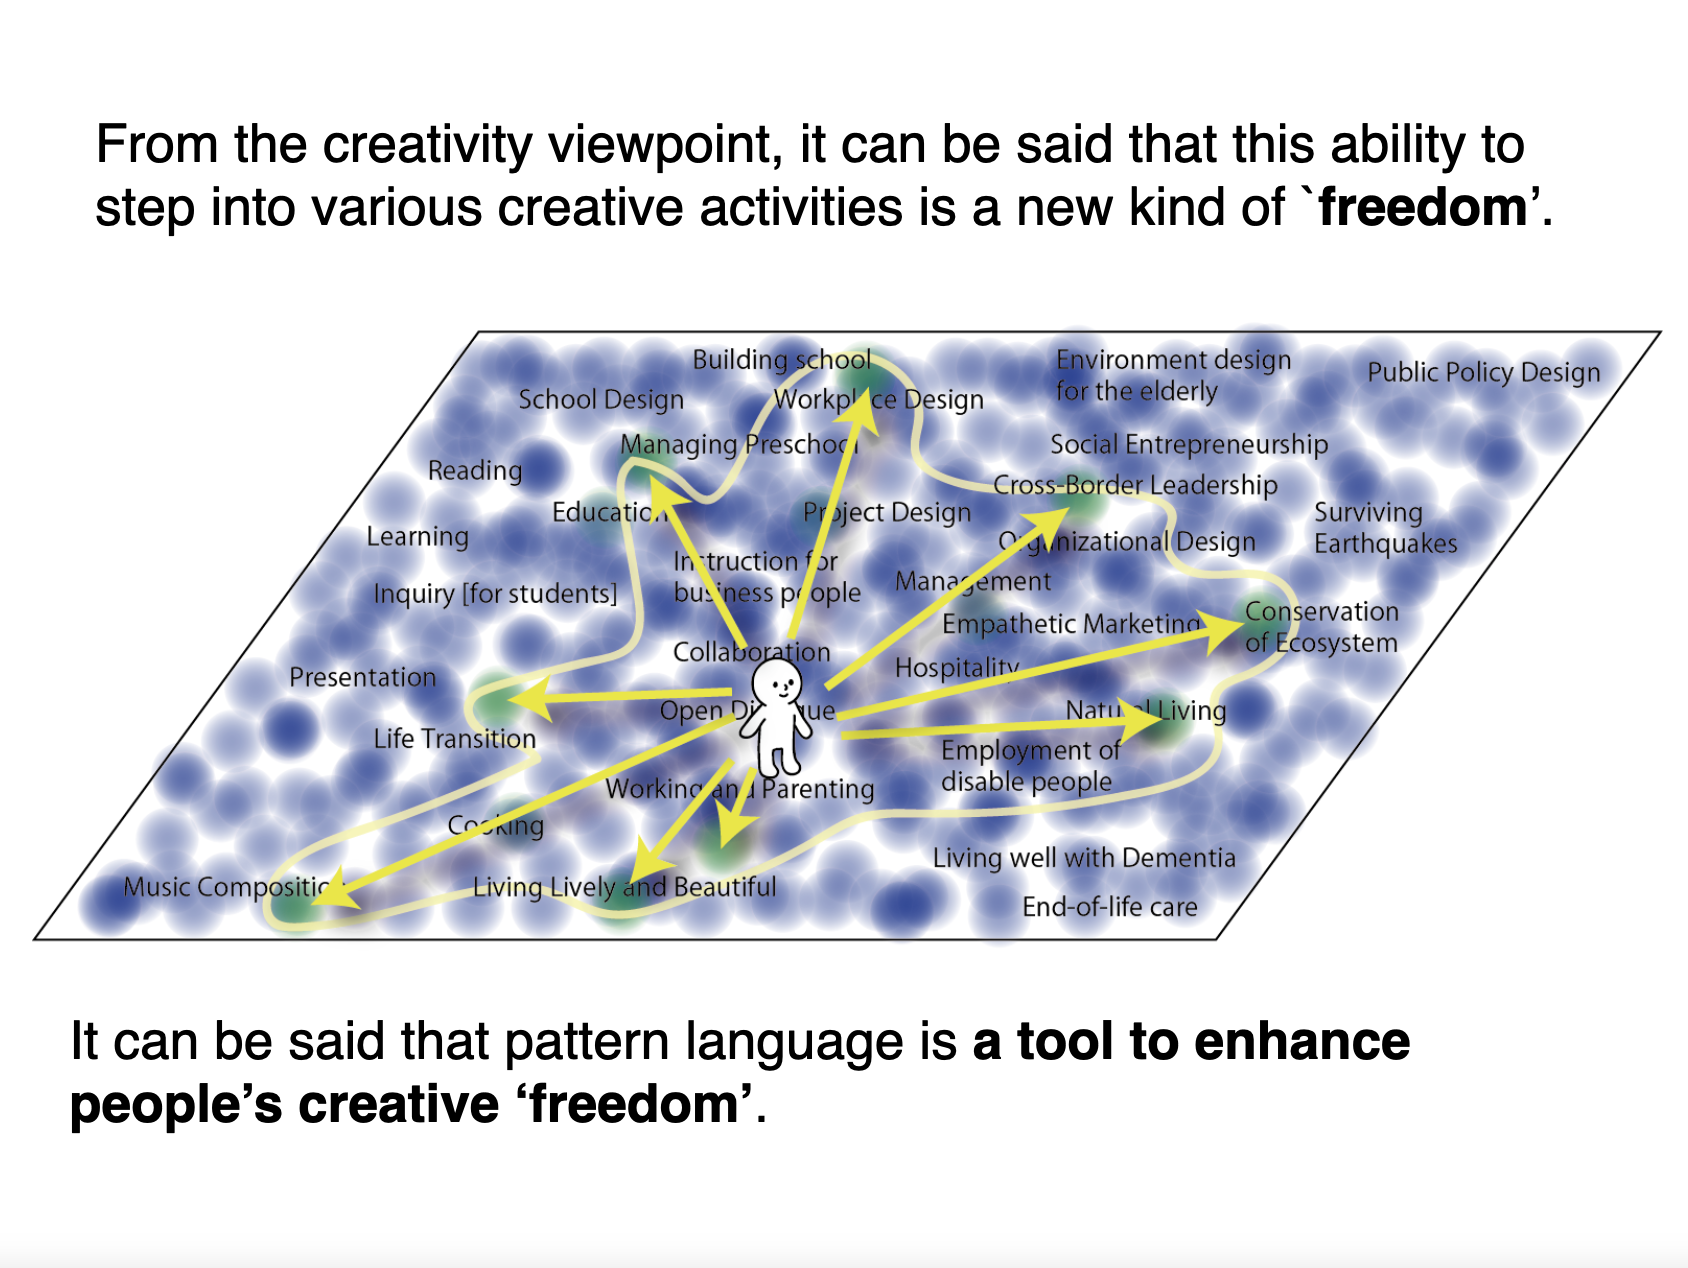 creativefreedom.png